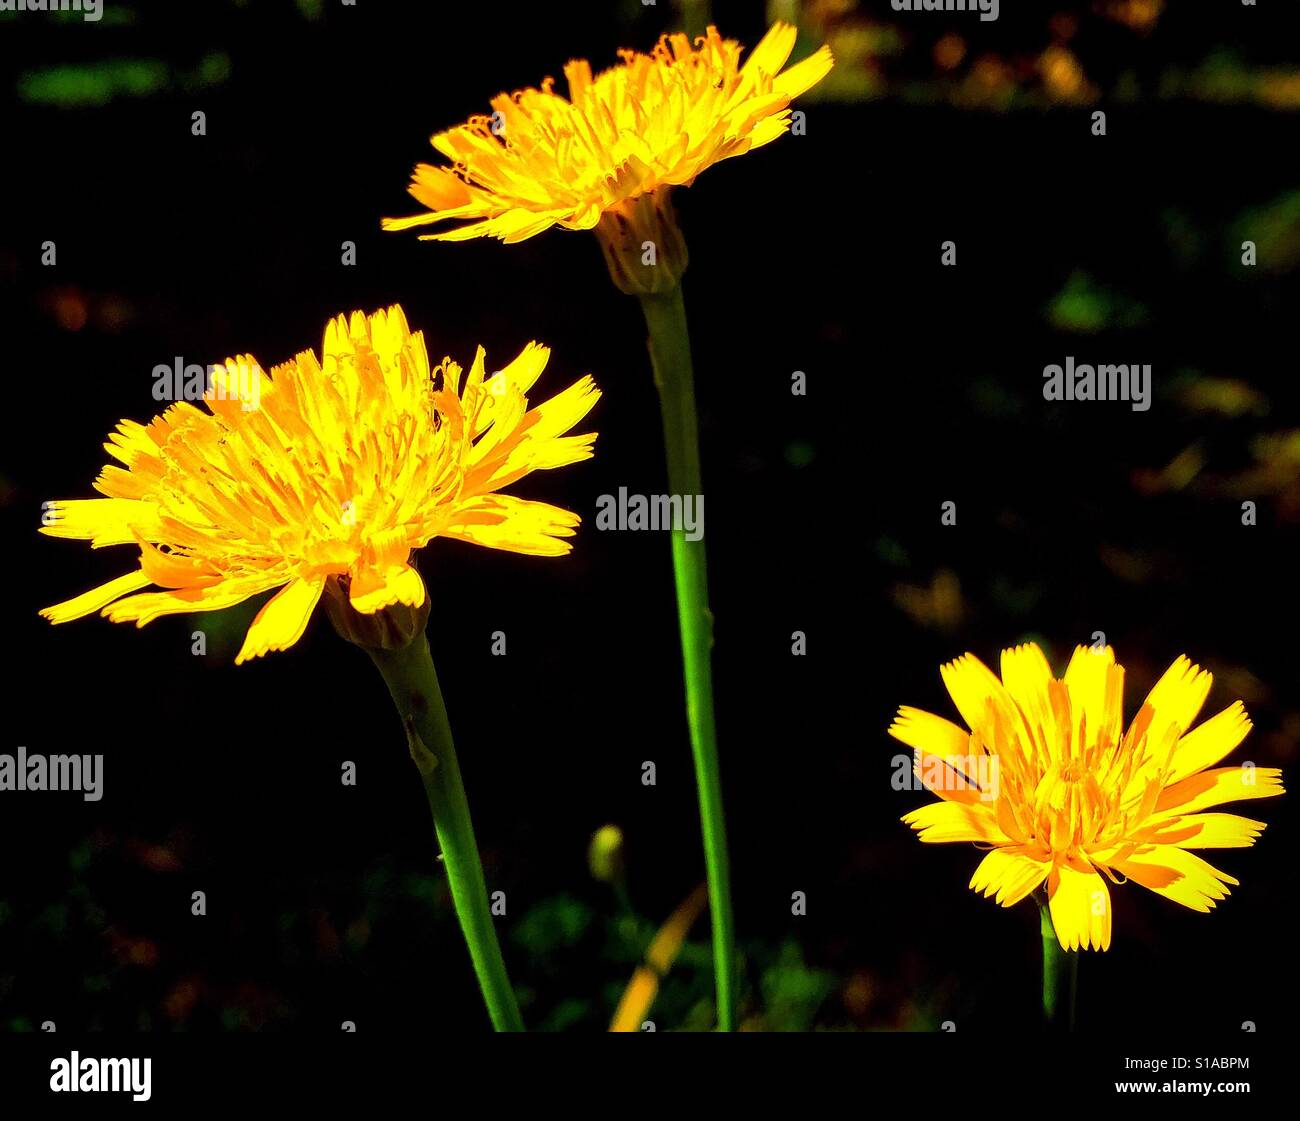 Three bright yellow dandelion flower heads shine at different heights against a dark background. - Stock Image